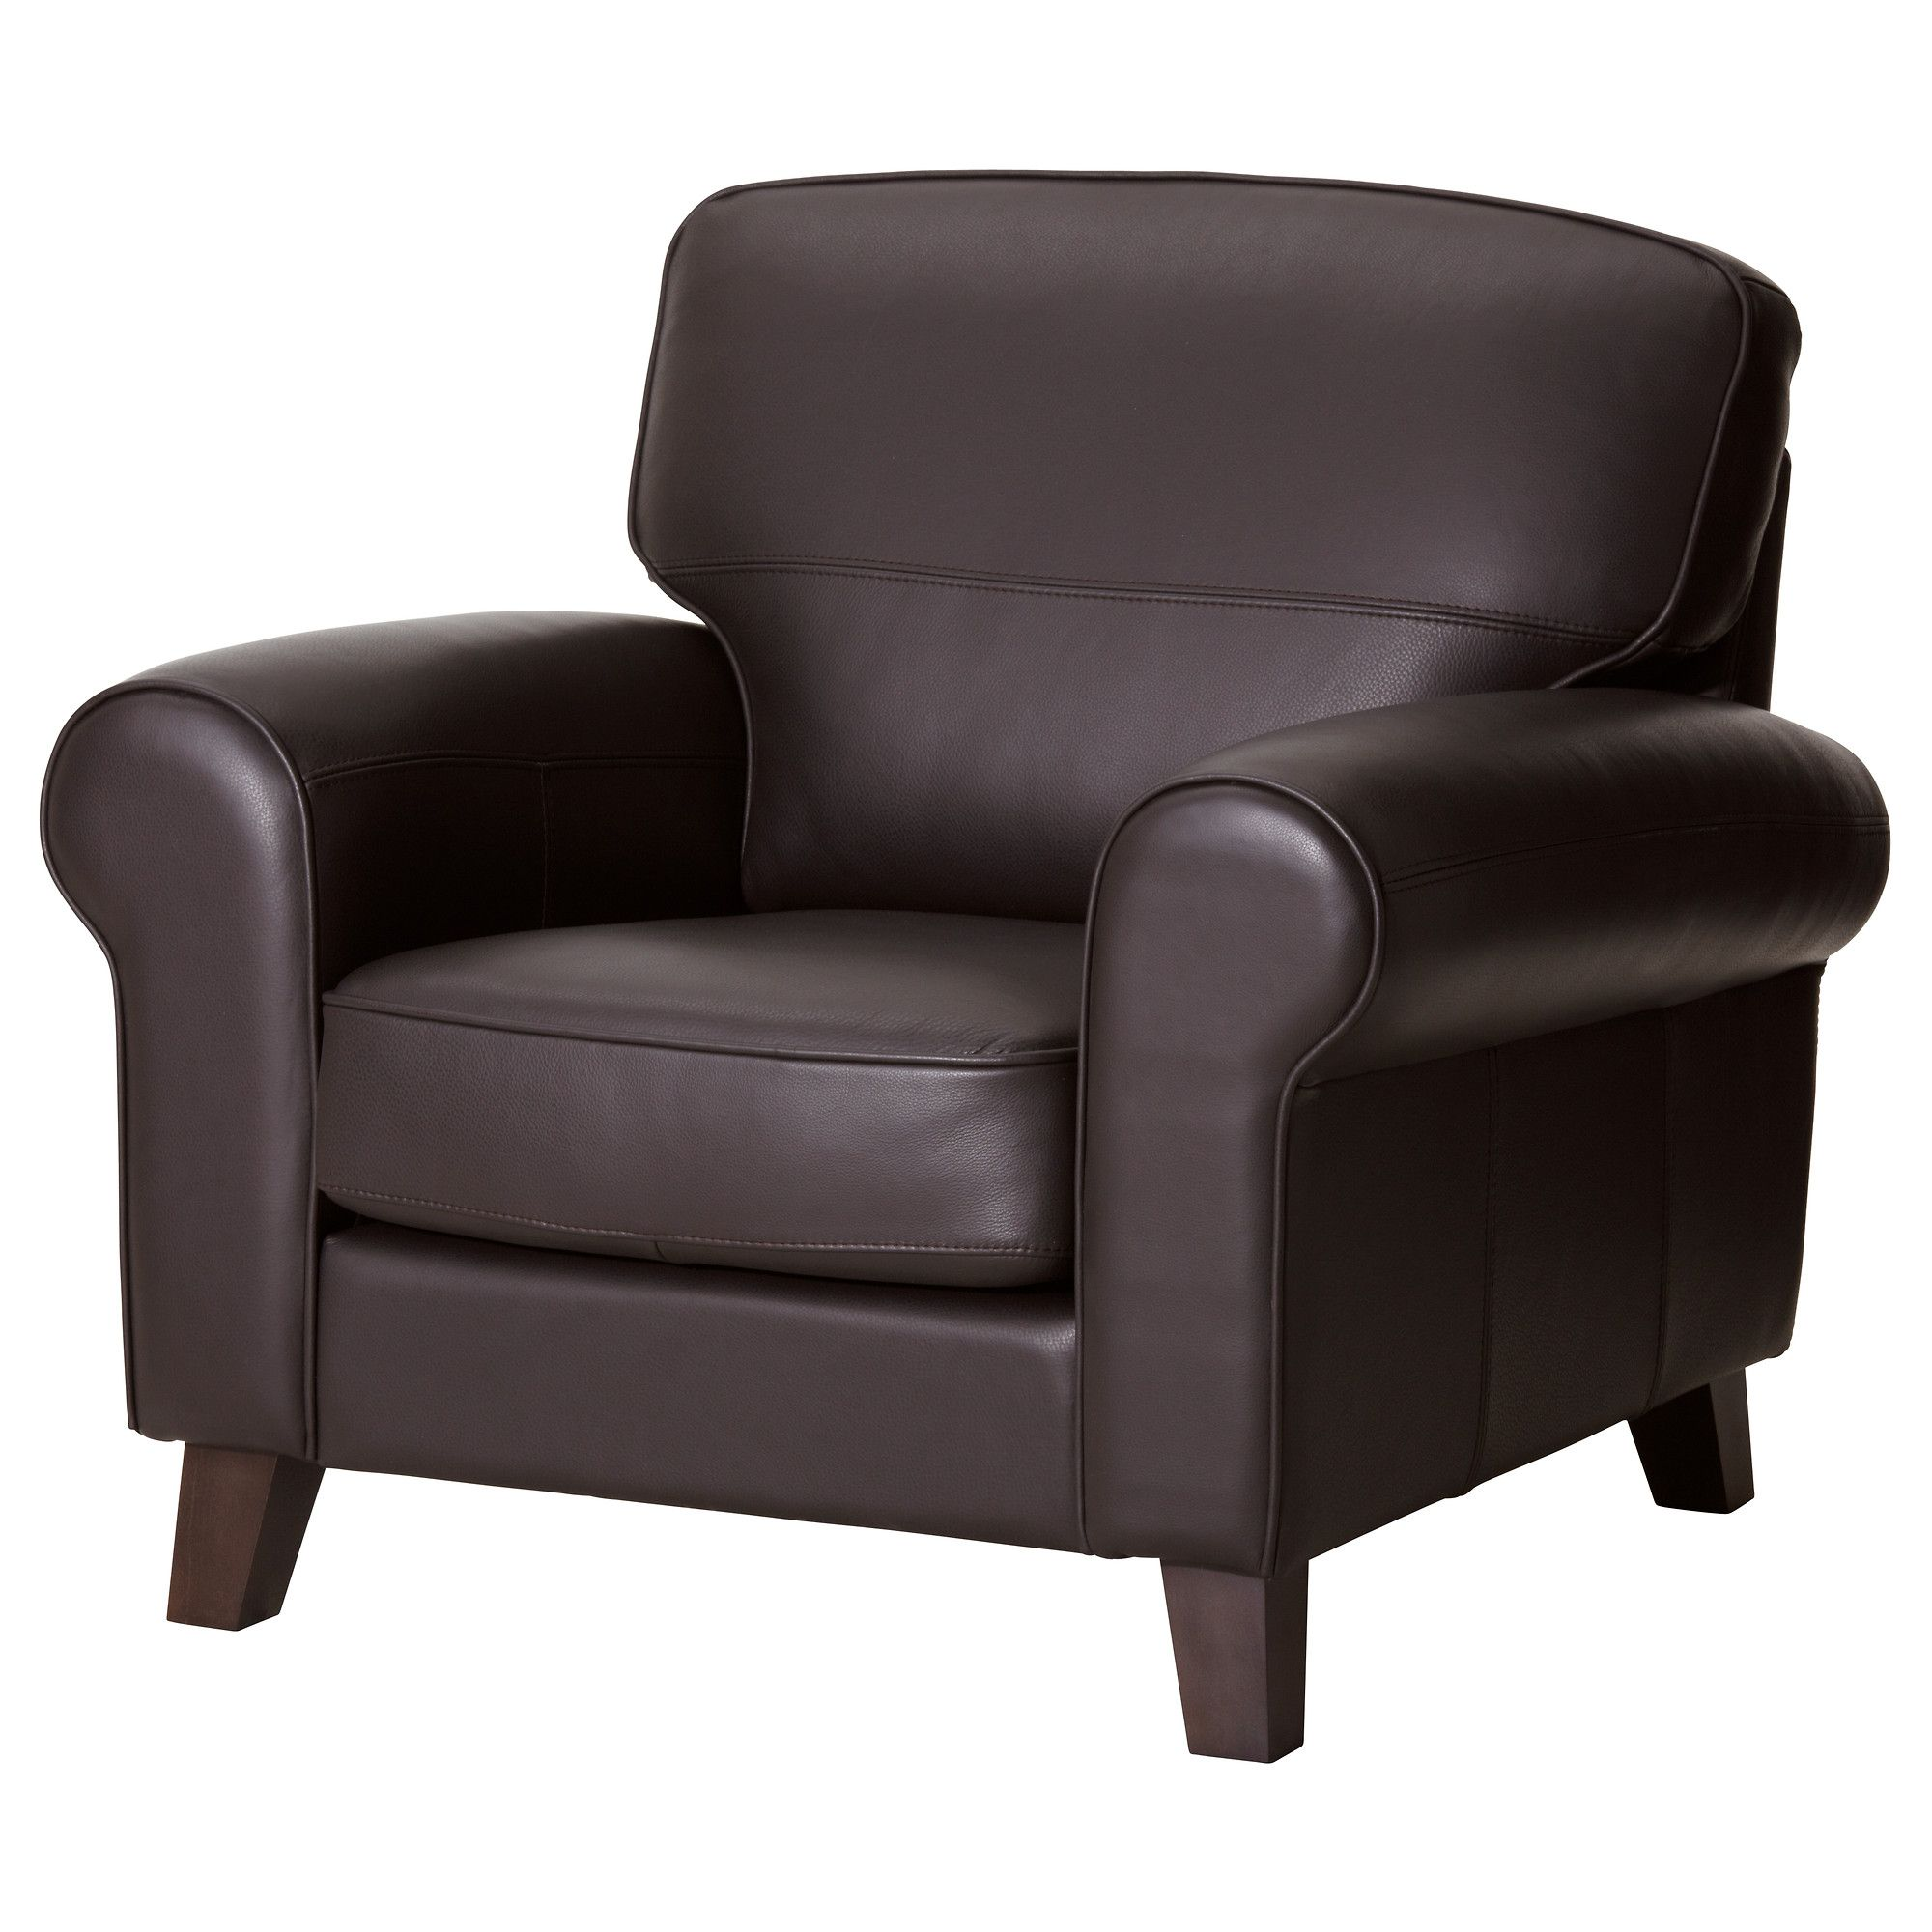 Charmant YSTAD Armchair IKEA Seat Surfaces And Armrests In Soft, Hardwearing, Easy  Care Grain Leather.